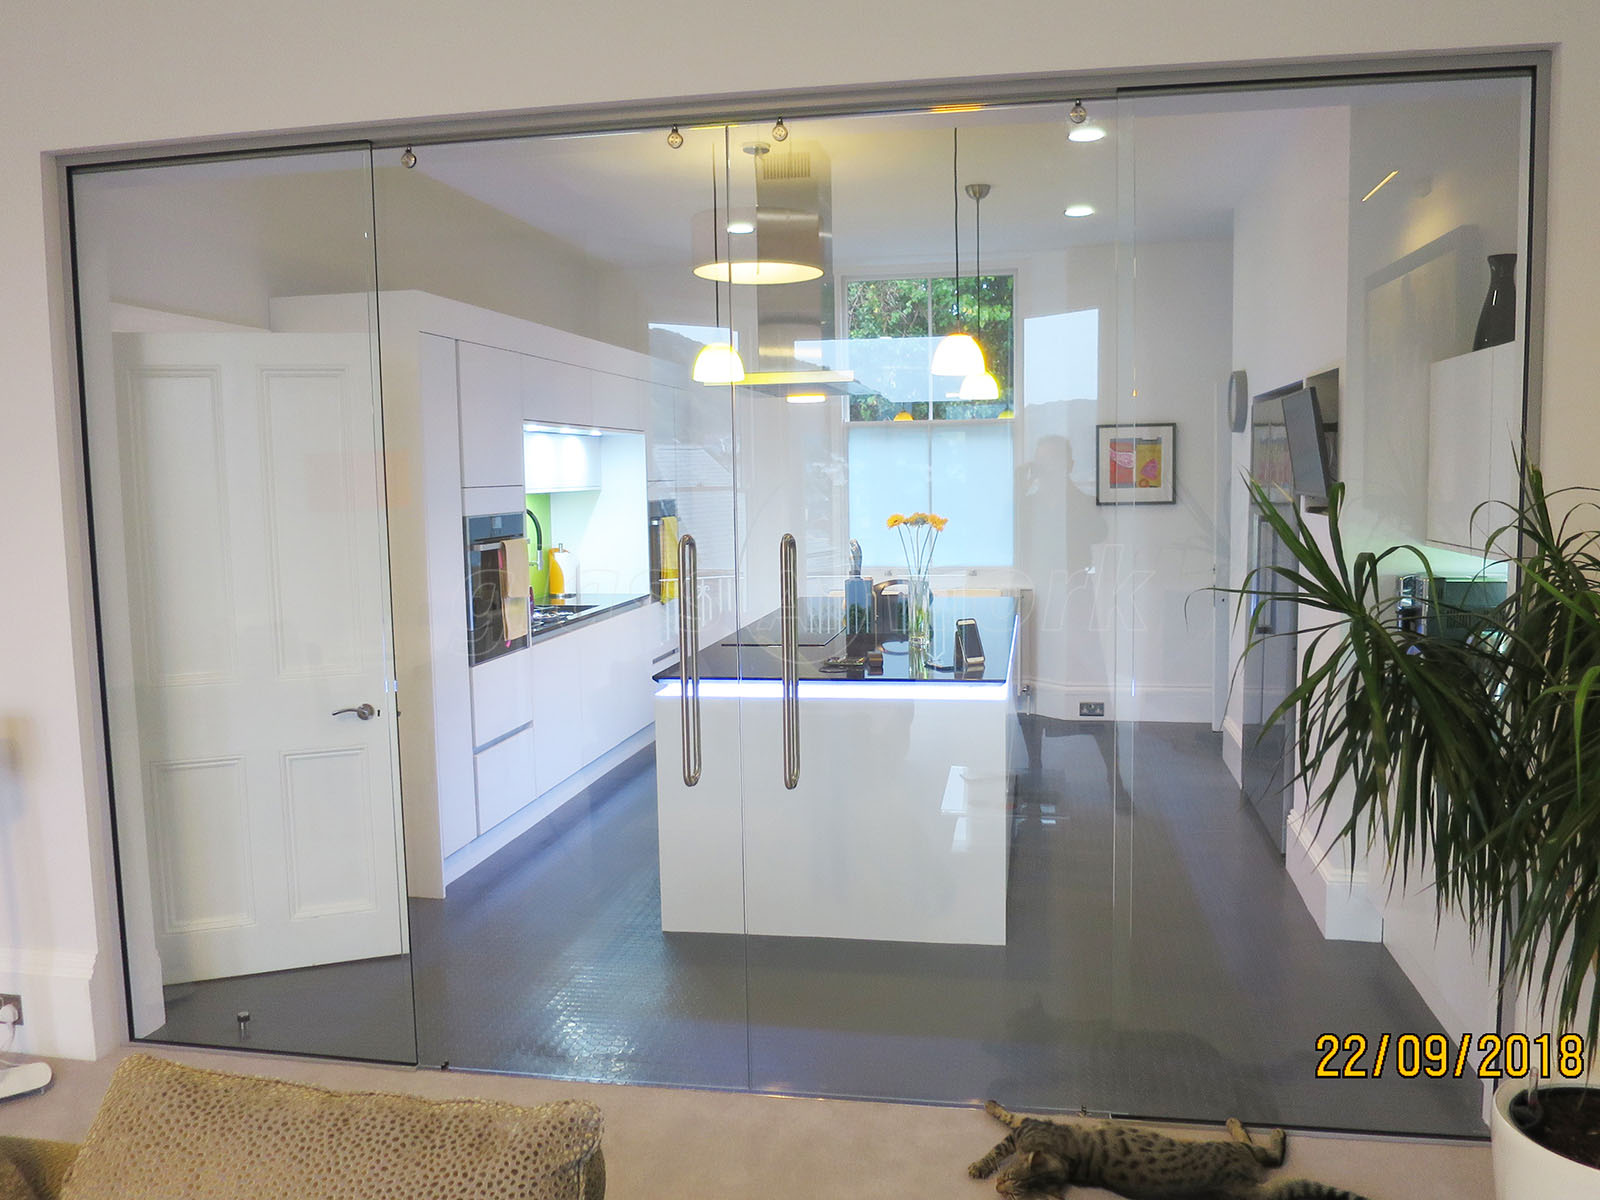 non fire rated double glass sliding doors at a domestic seaside property in dartmouth devon